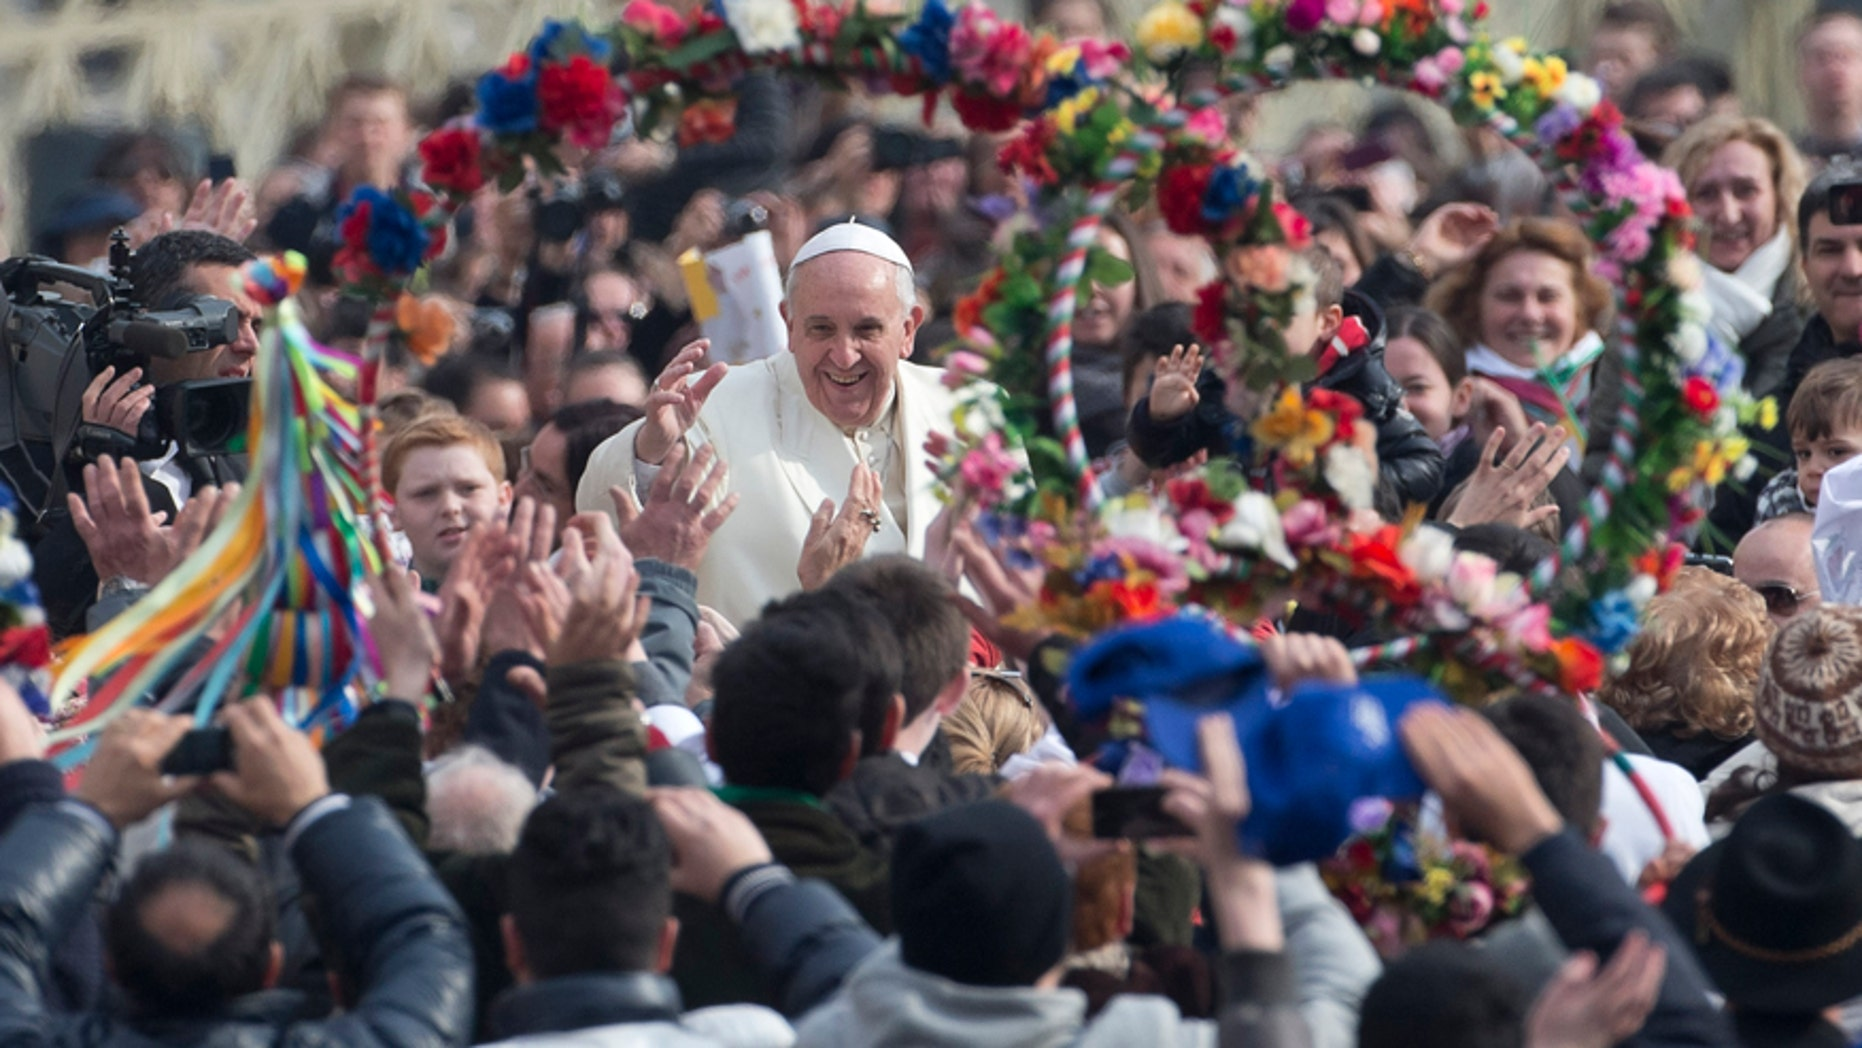 Pope Francis is cheered as he is driven through the crowd ahead of his weekly general audience in St. Peter's Square, at the Vatican, Wednesday, Feb. 26, 2014.